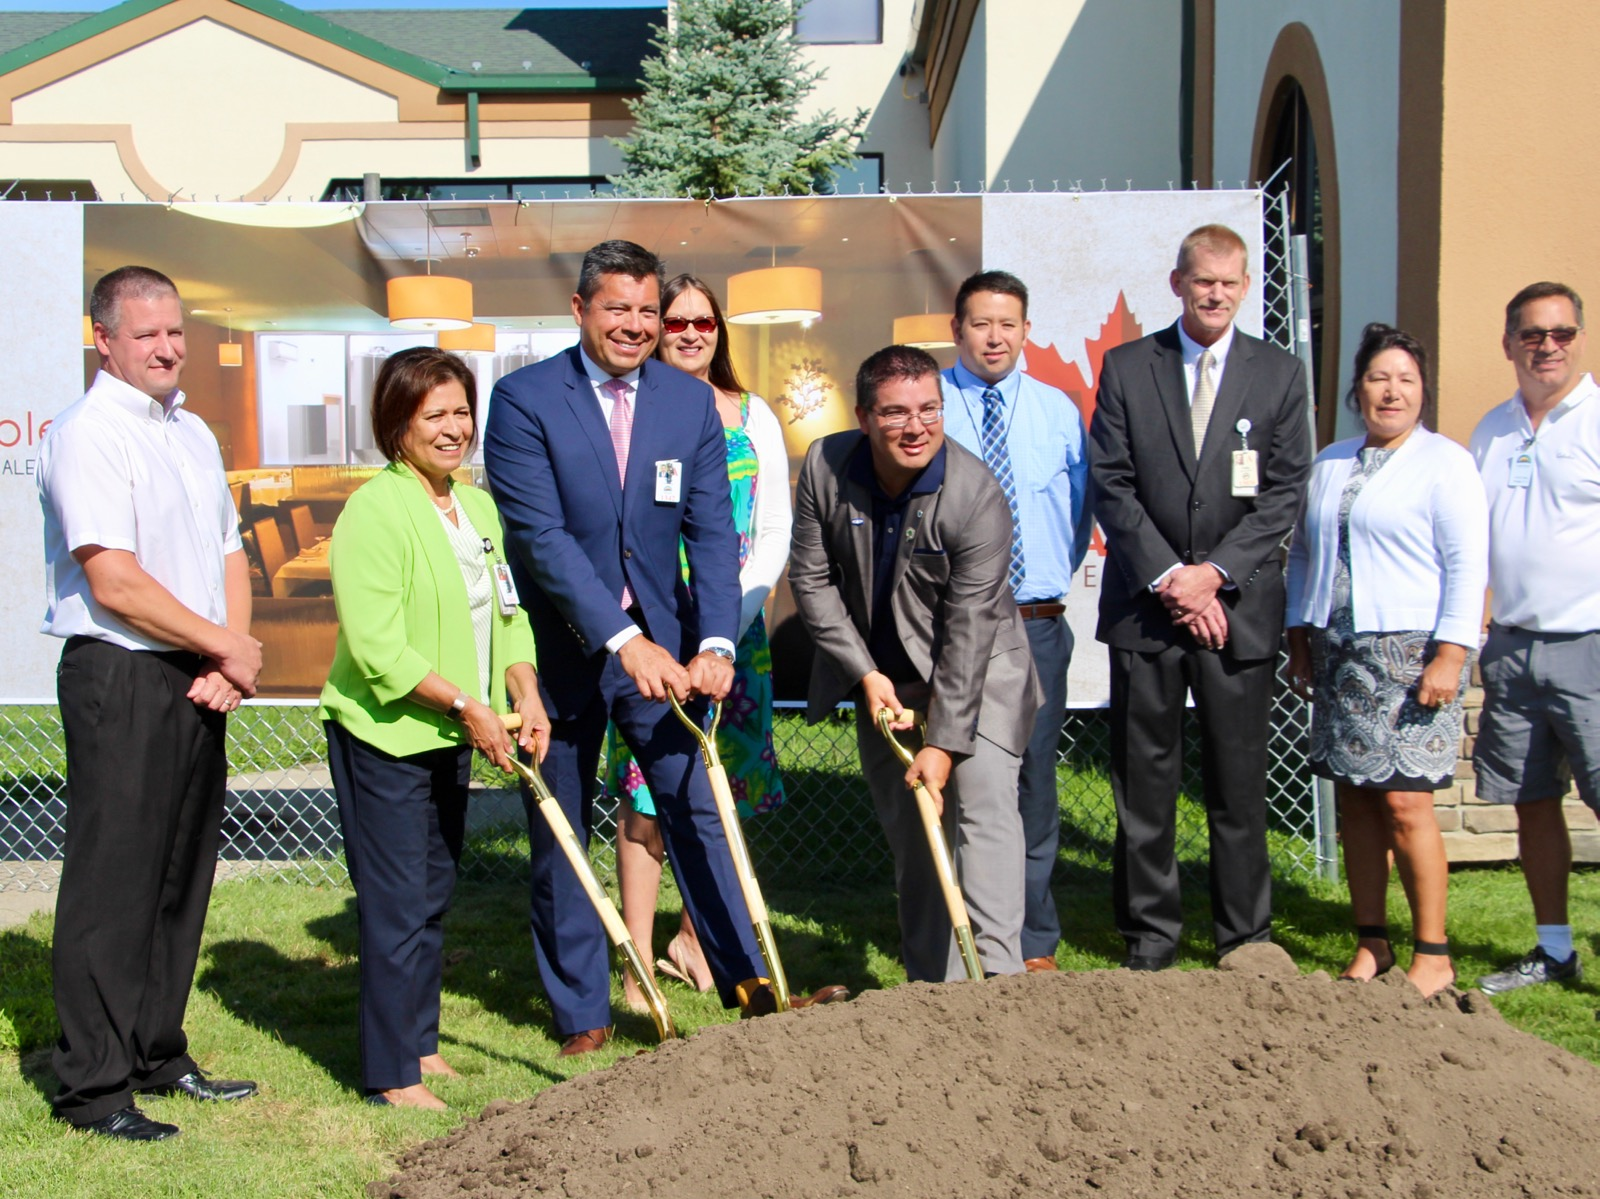 St. Regis Mohawk Tribe breaks ground on brewery at casino